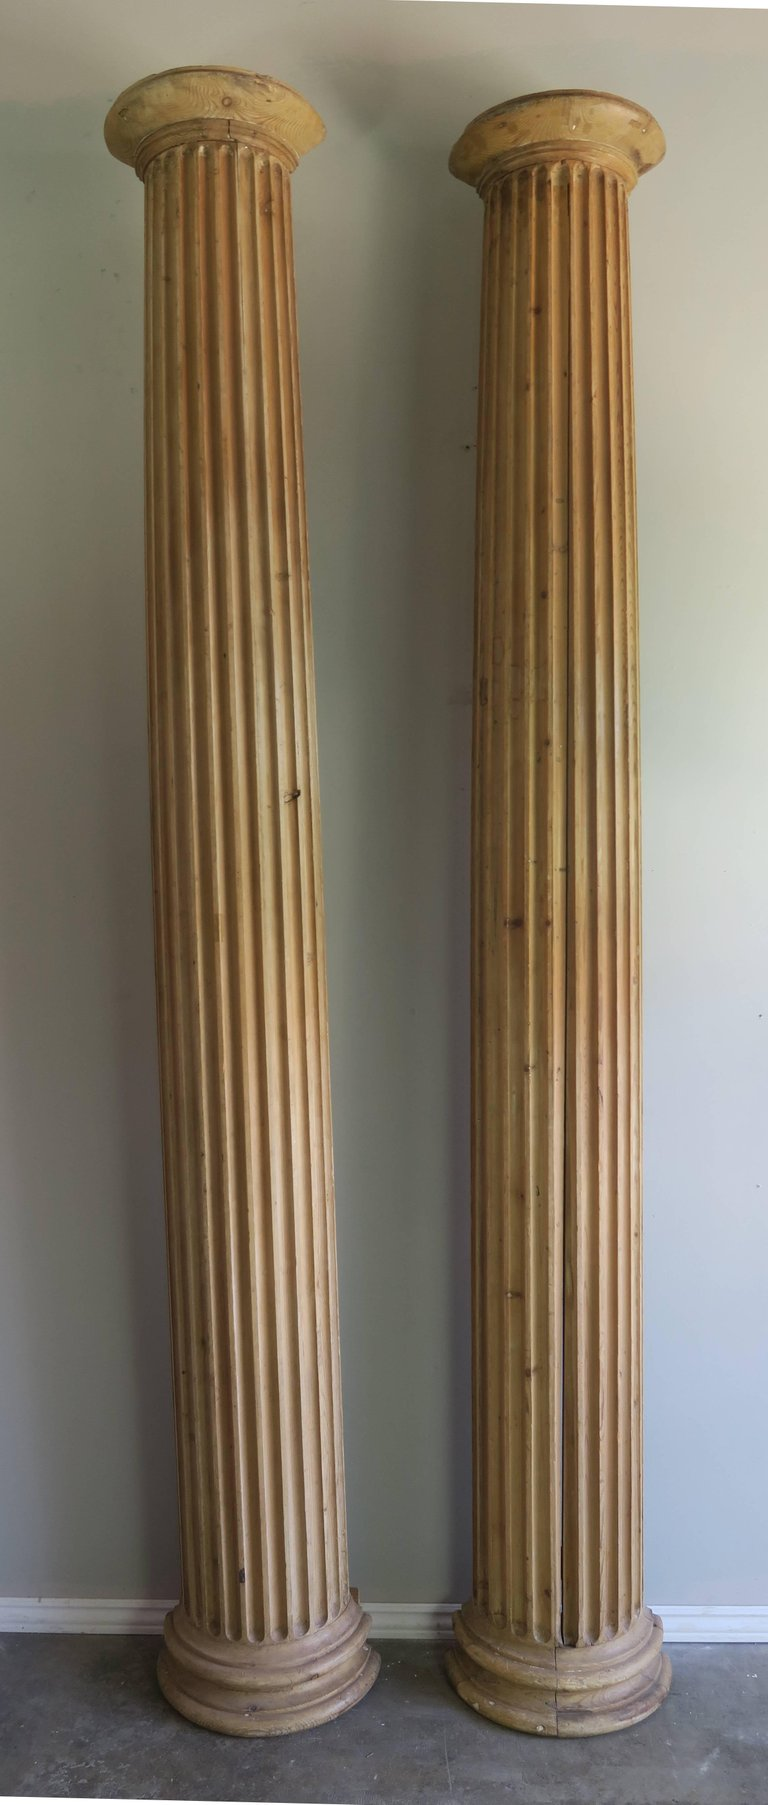 19th Century Italian Carved Pinewood Pilasters, Pair